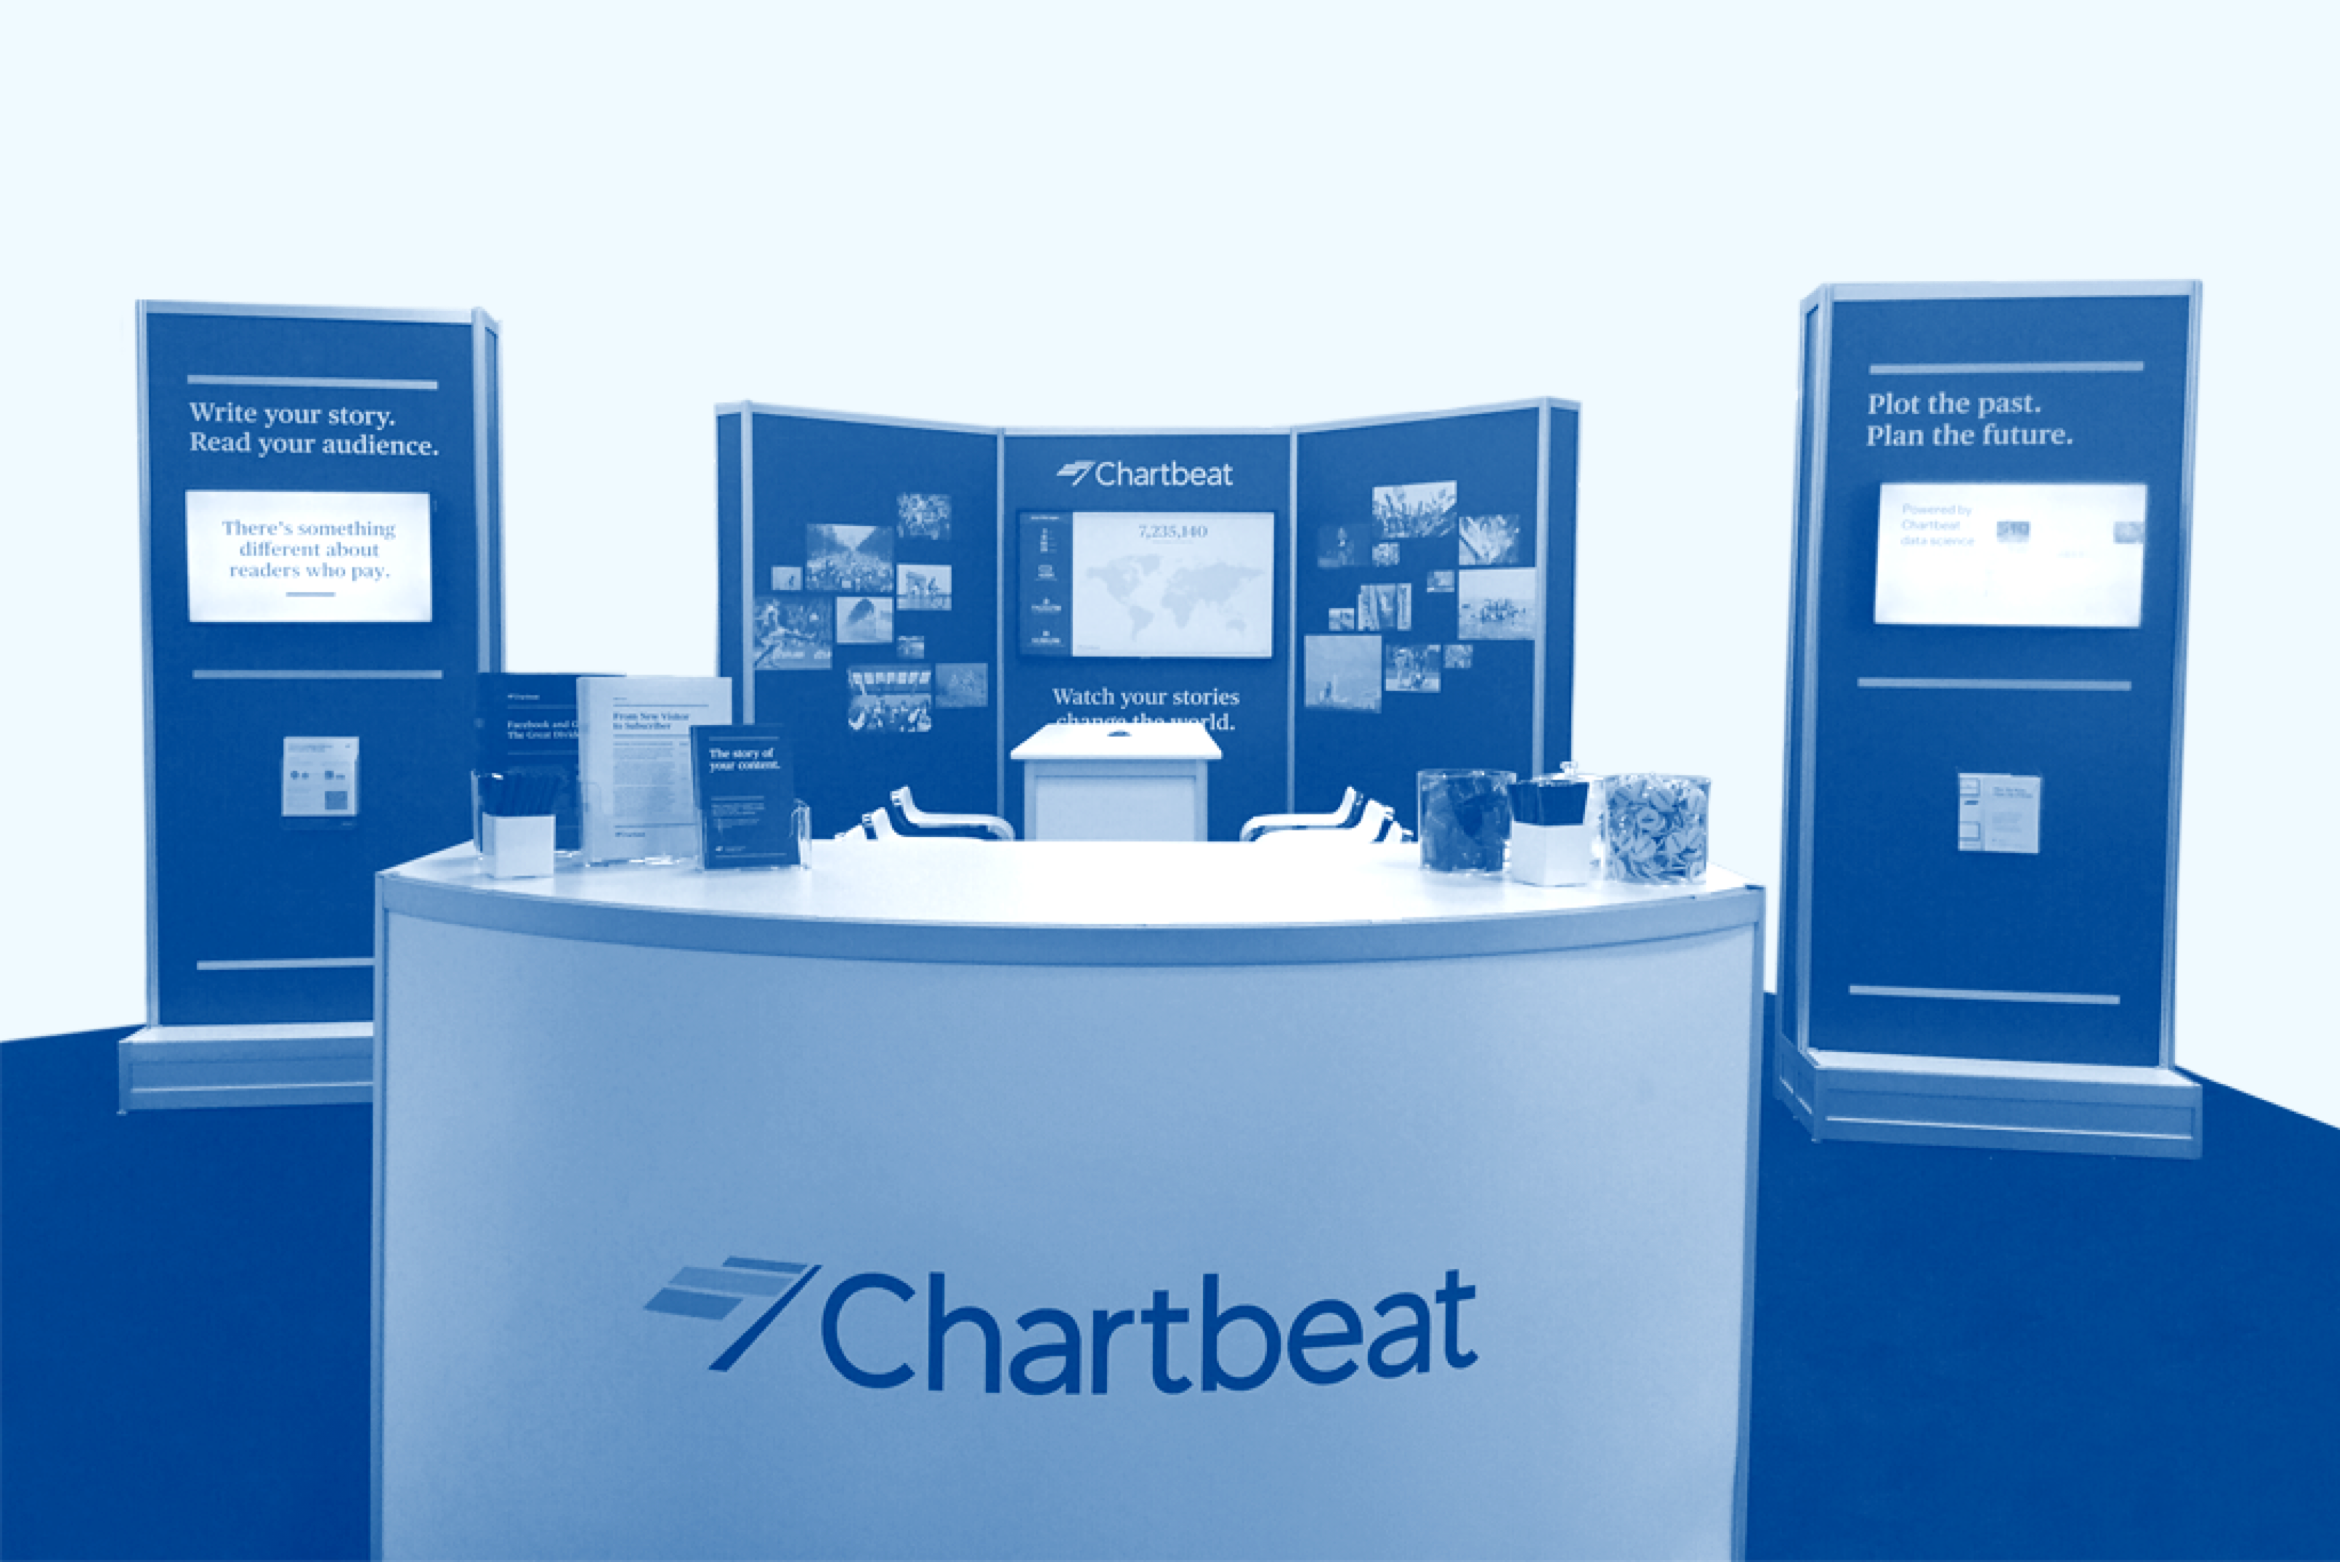 chartbeat-booth-edit2